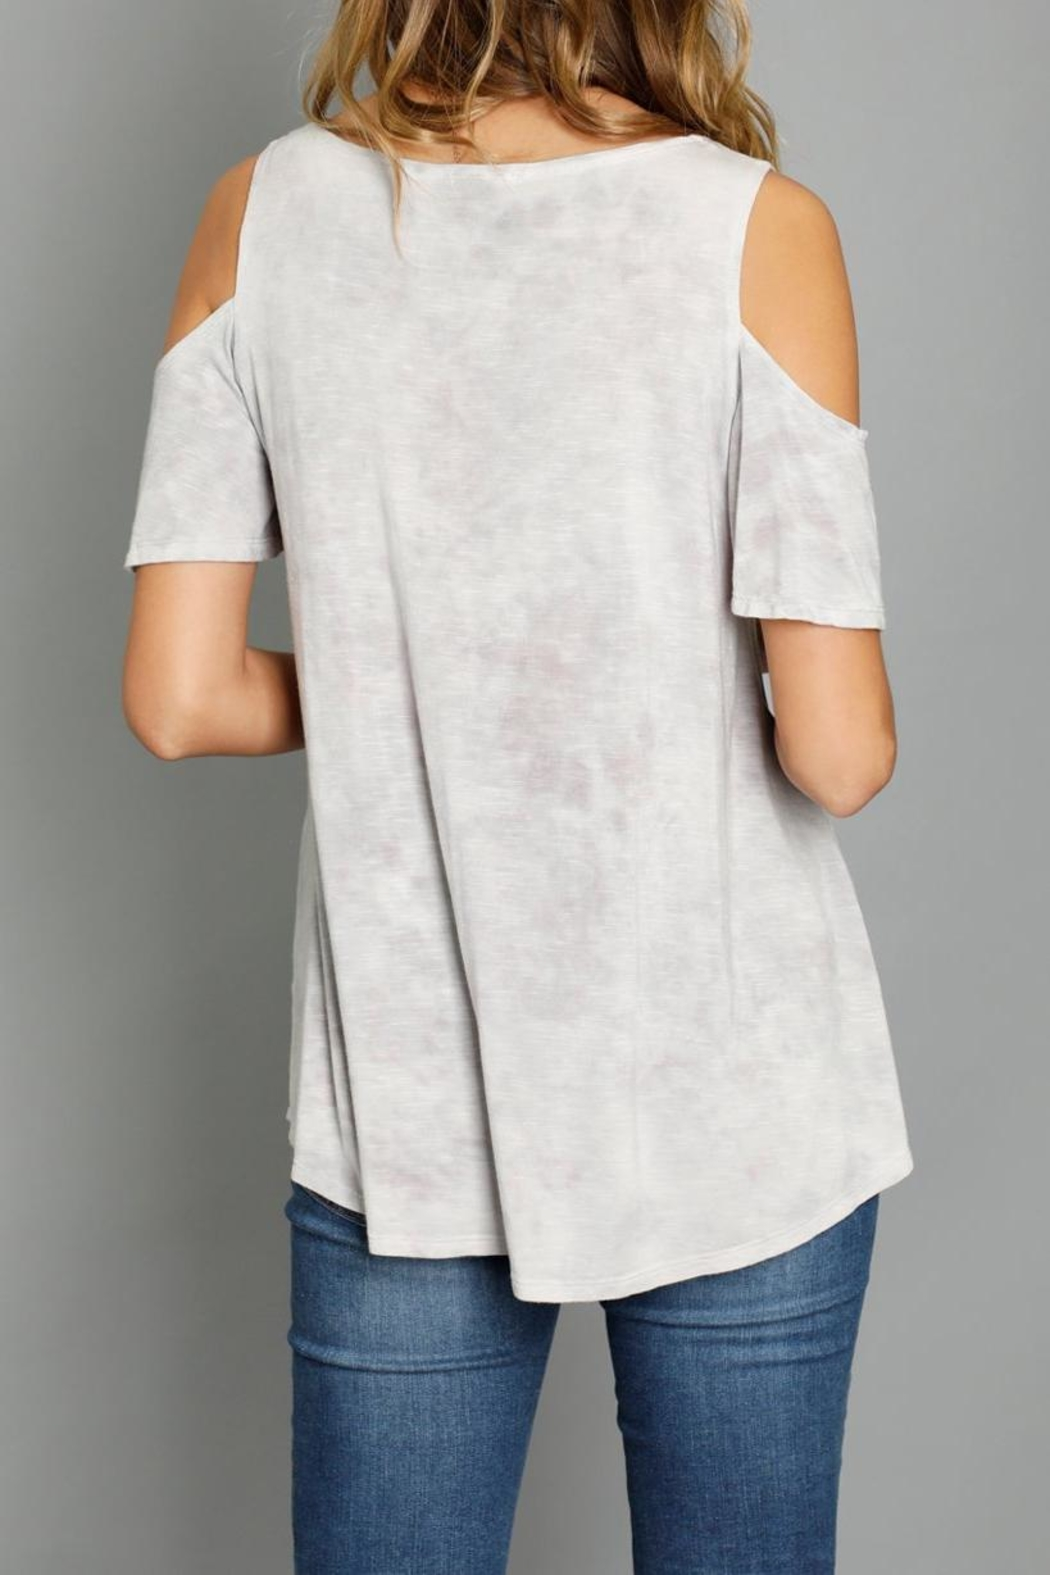 Mod-o-doc Cold Shoulder Top - Front Full Image